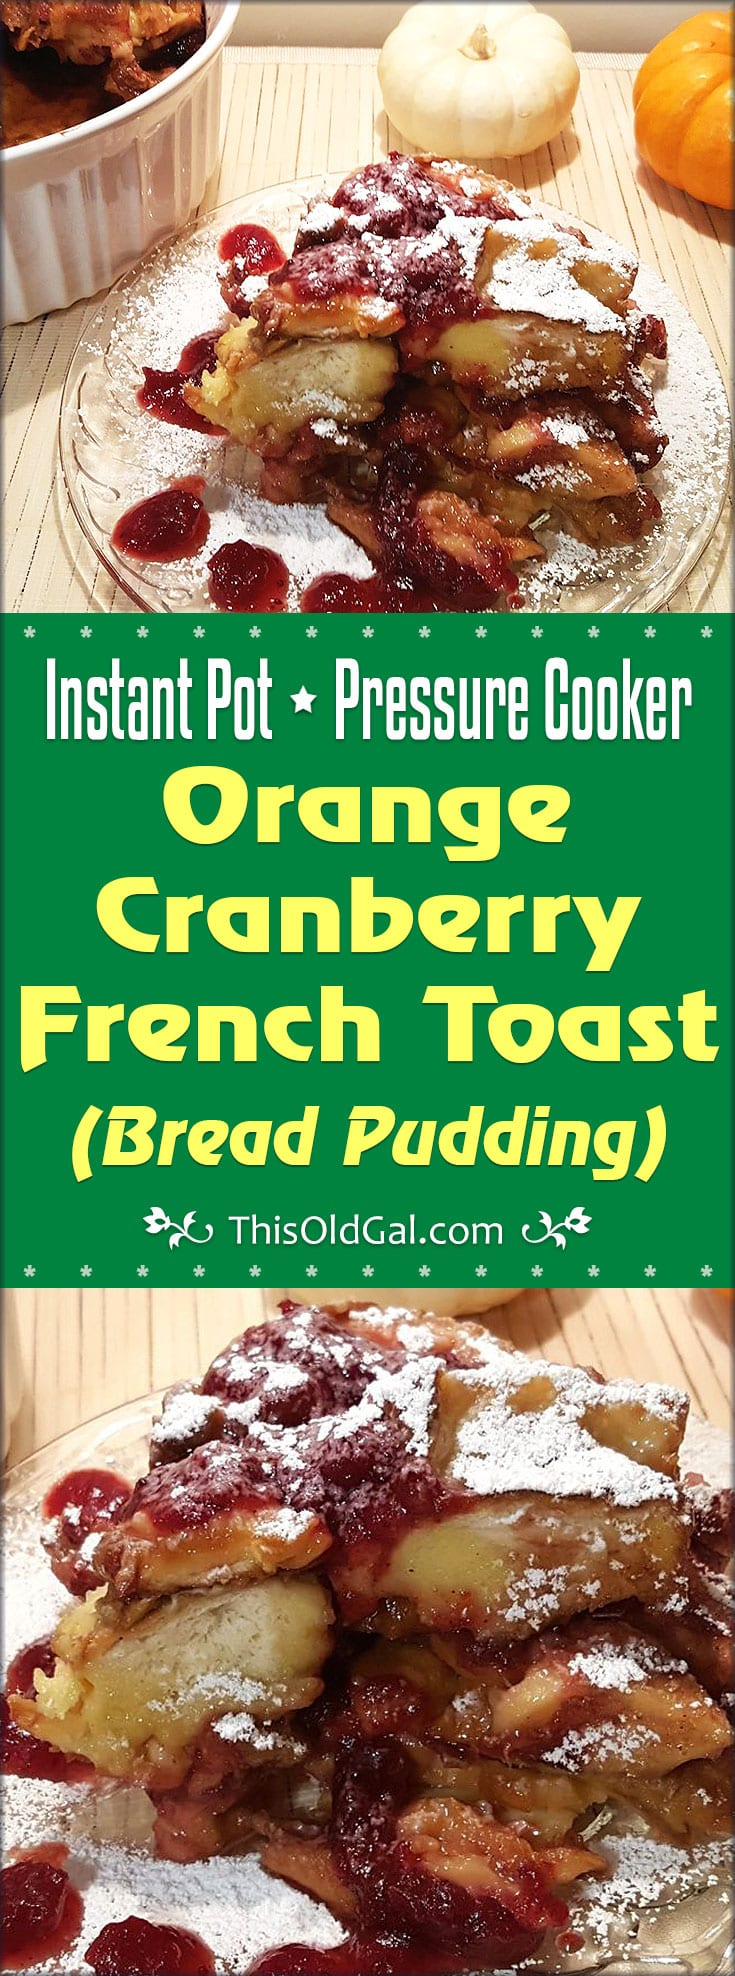 Instant Pot Pressure Cooker Orange Cranberry French Toast (Bread Pudding)